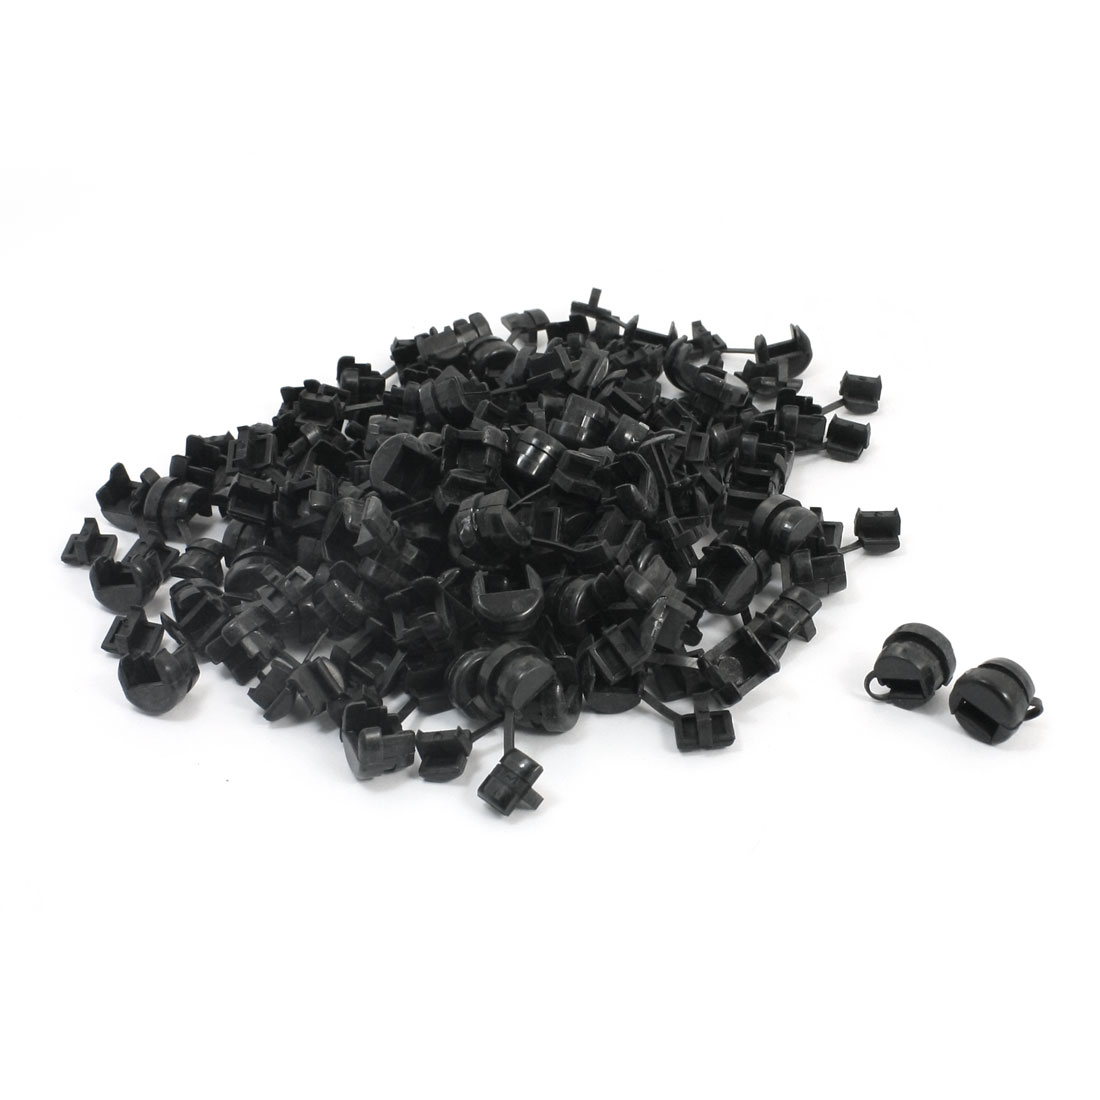 100 Pcs Wires Protectors Strain Relief Bushing for 6.5mm Width Flat Cables